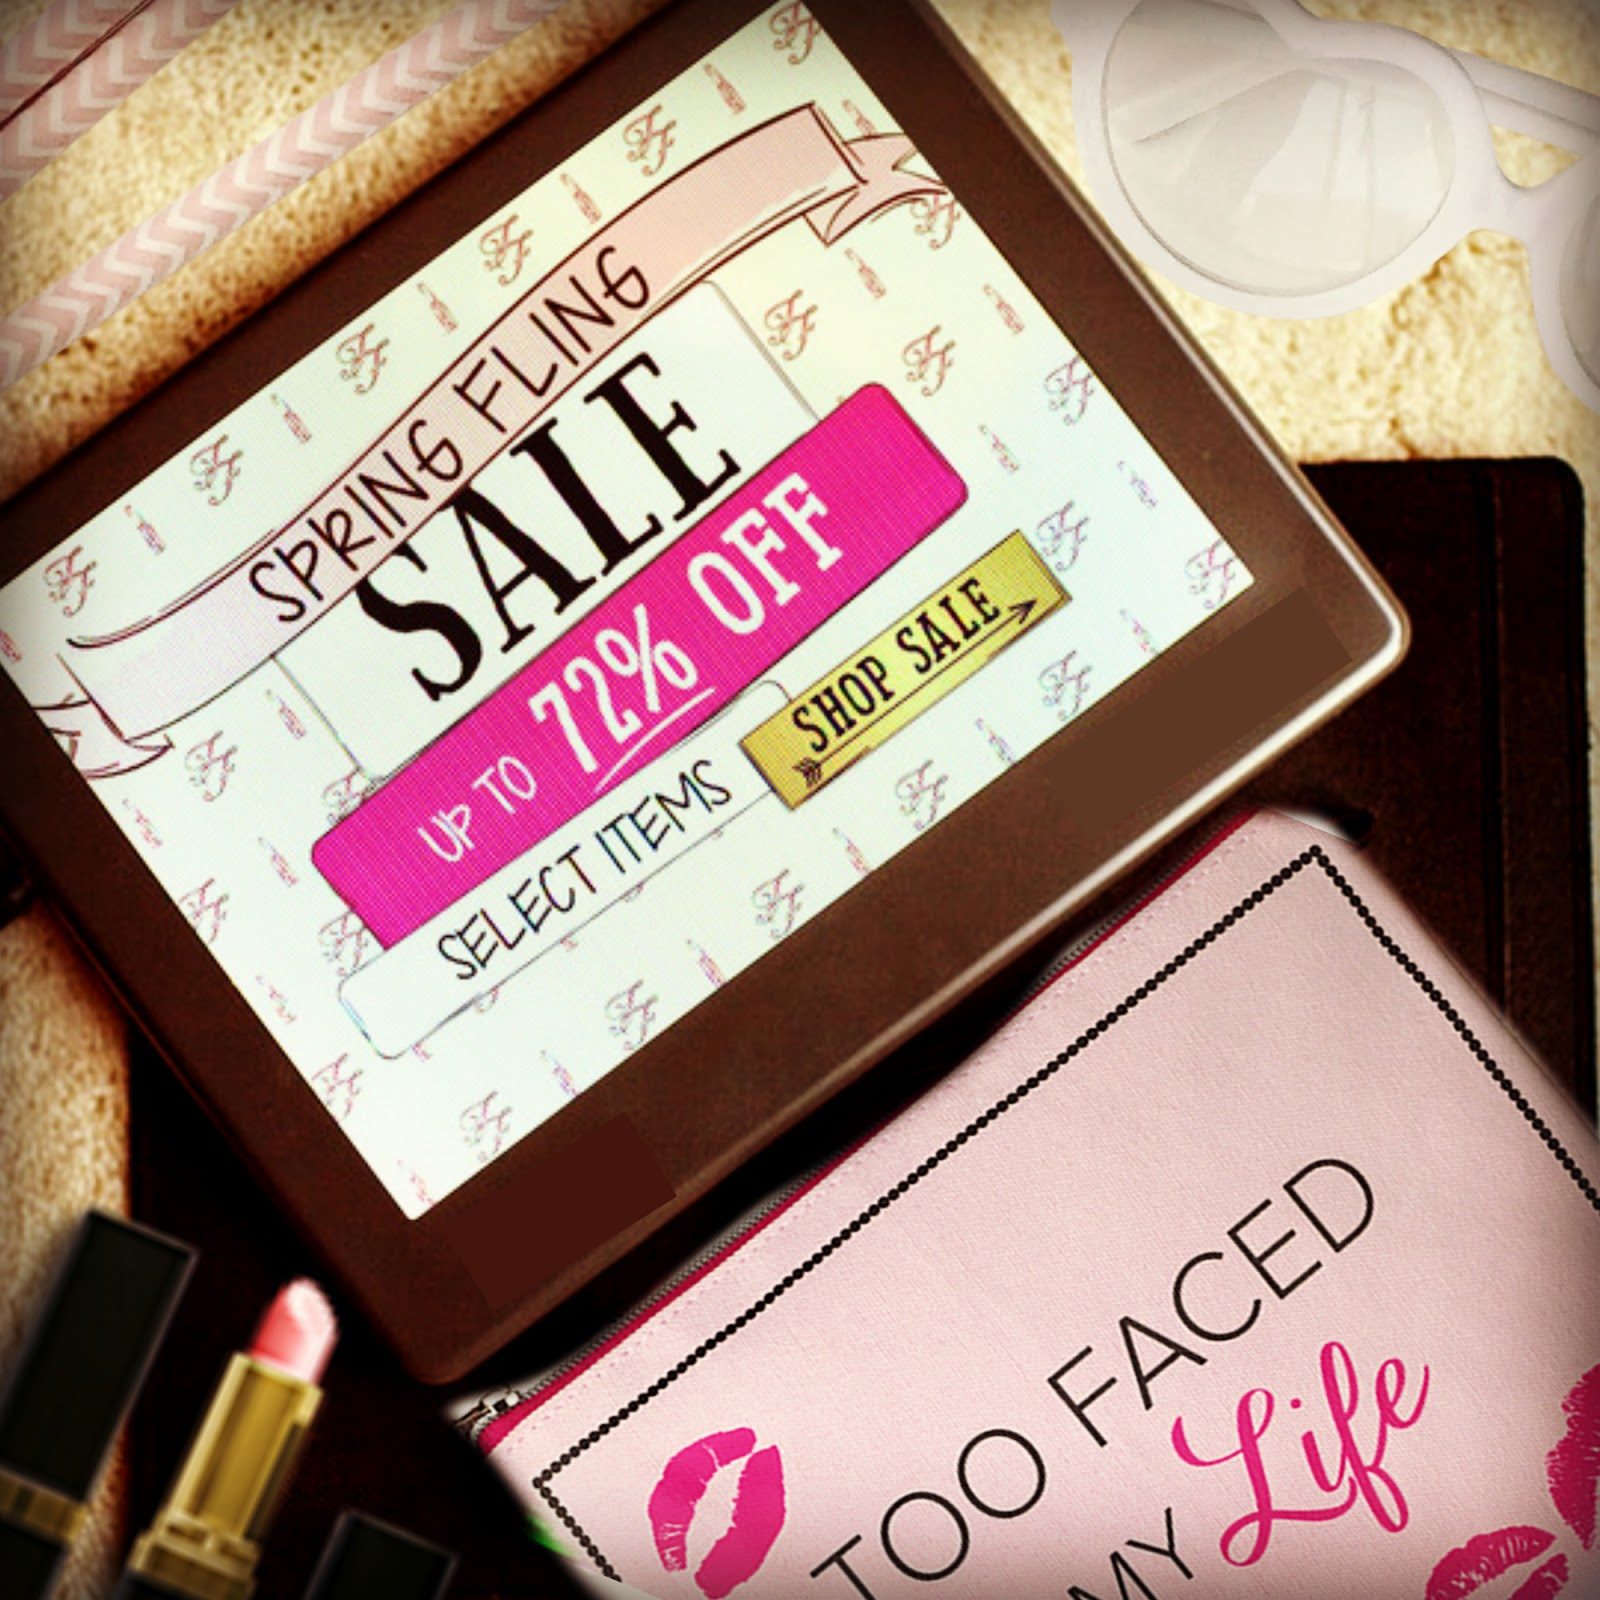 Too Faced's Black Friday Sale Includes A New Product We've Got The ExclusiveDeets forecasting